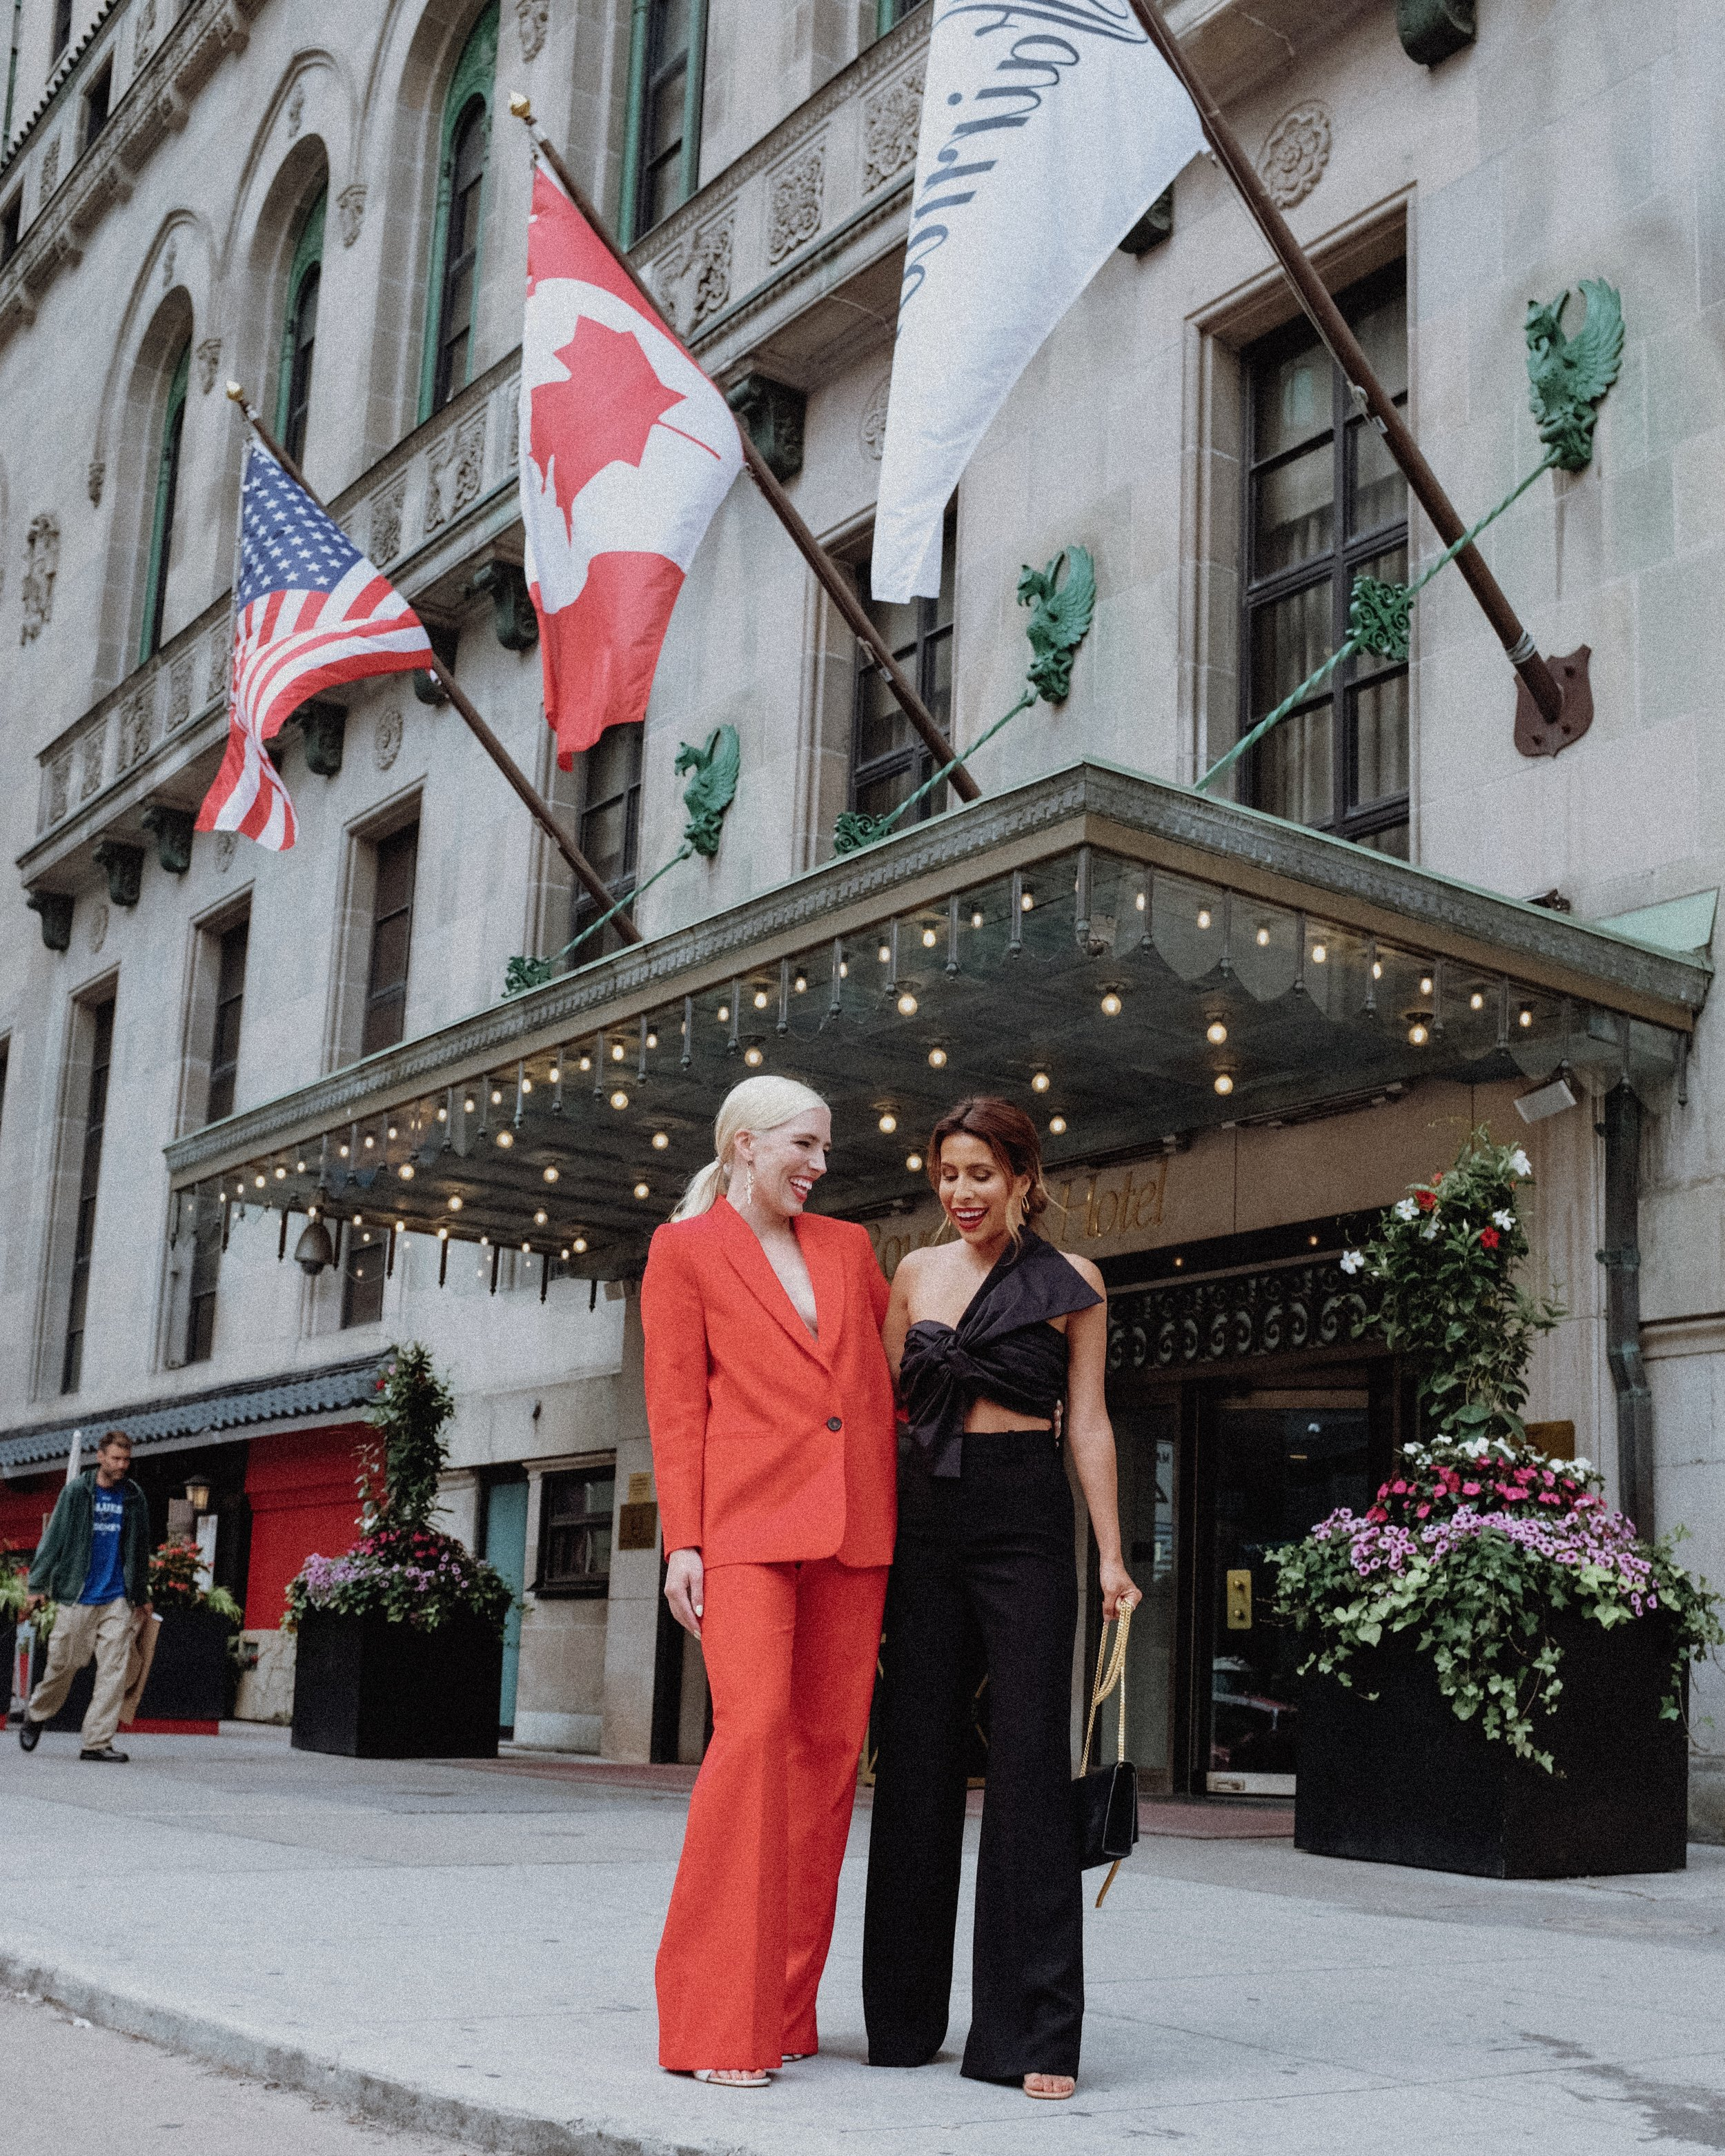 Outside of Fairmont Royal York